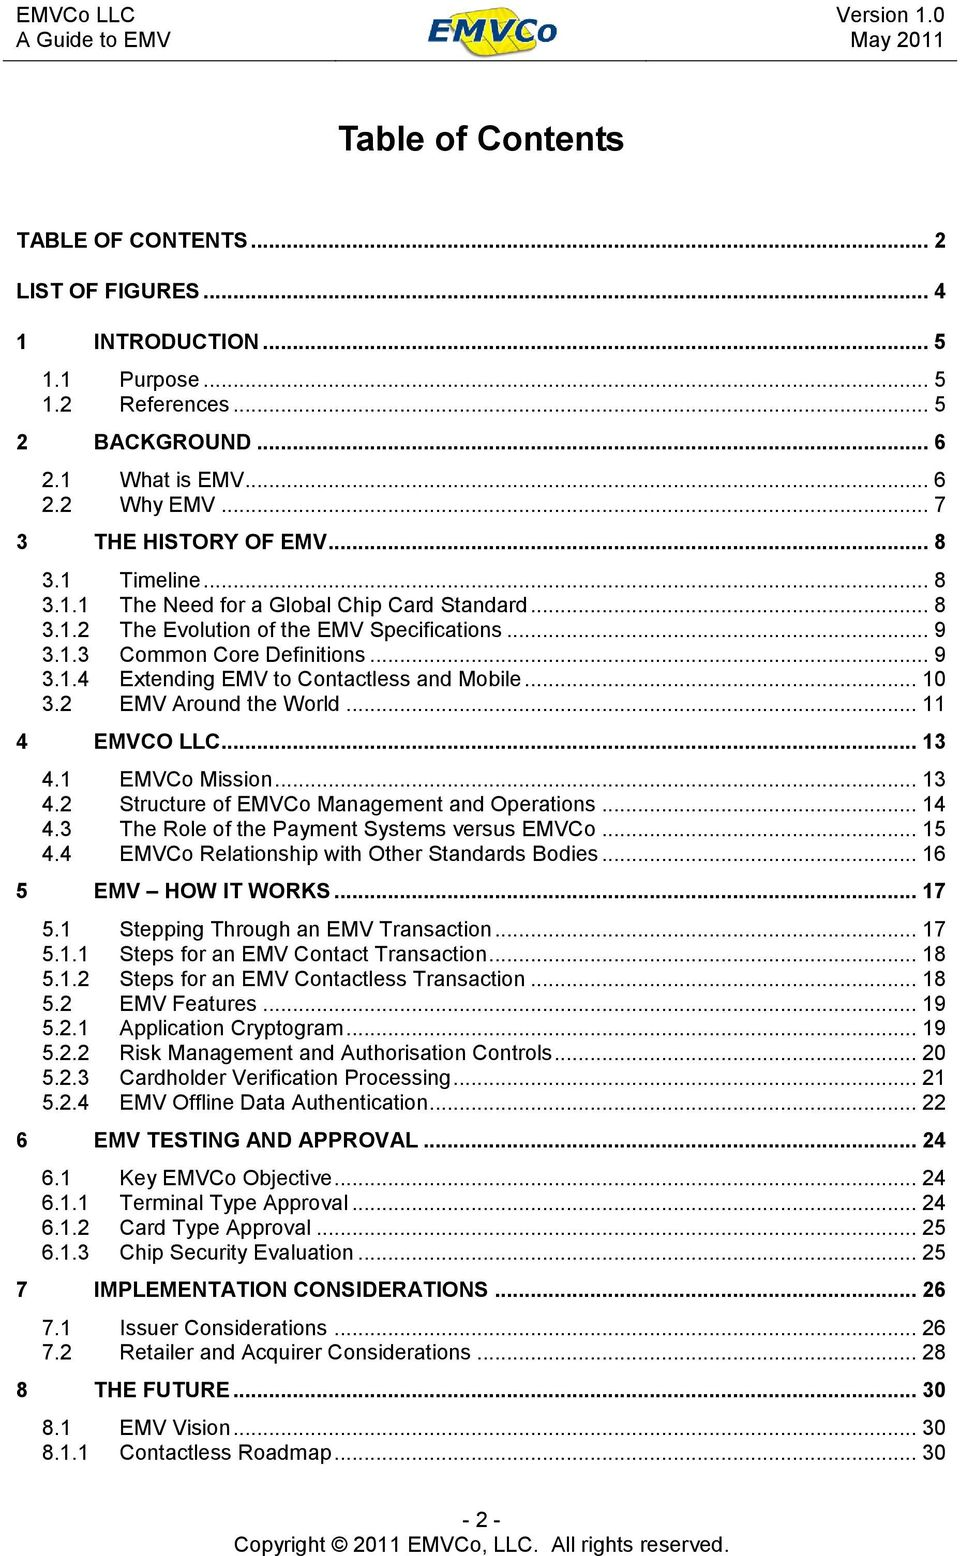 .. 10 3.2 EMV Around the World... 11 4 EMVCO LLC... 13 4.1 EMVCo Mission... 13 4.2 Structure of EMVCo Management and Operations... 14 4.3 The Role of the Payment Systems versus EMVCo... 15 4.